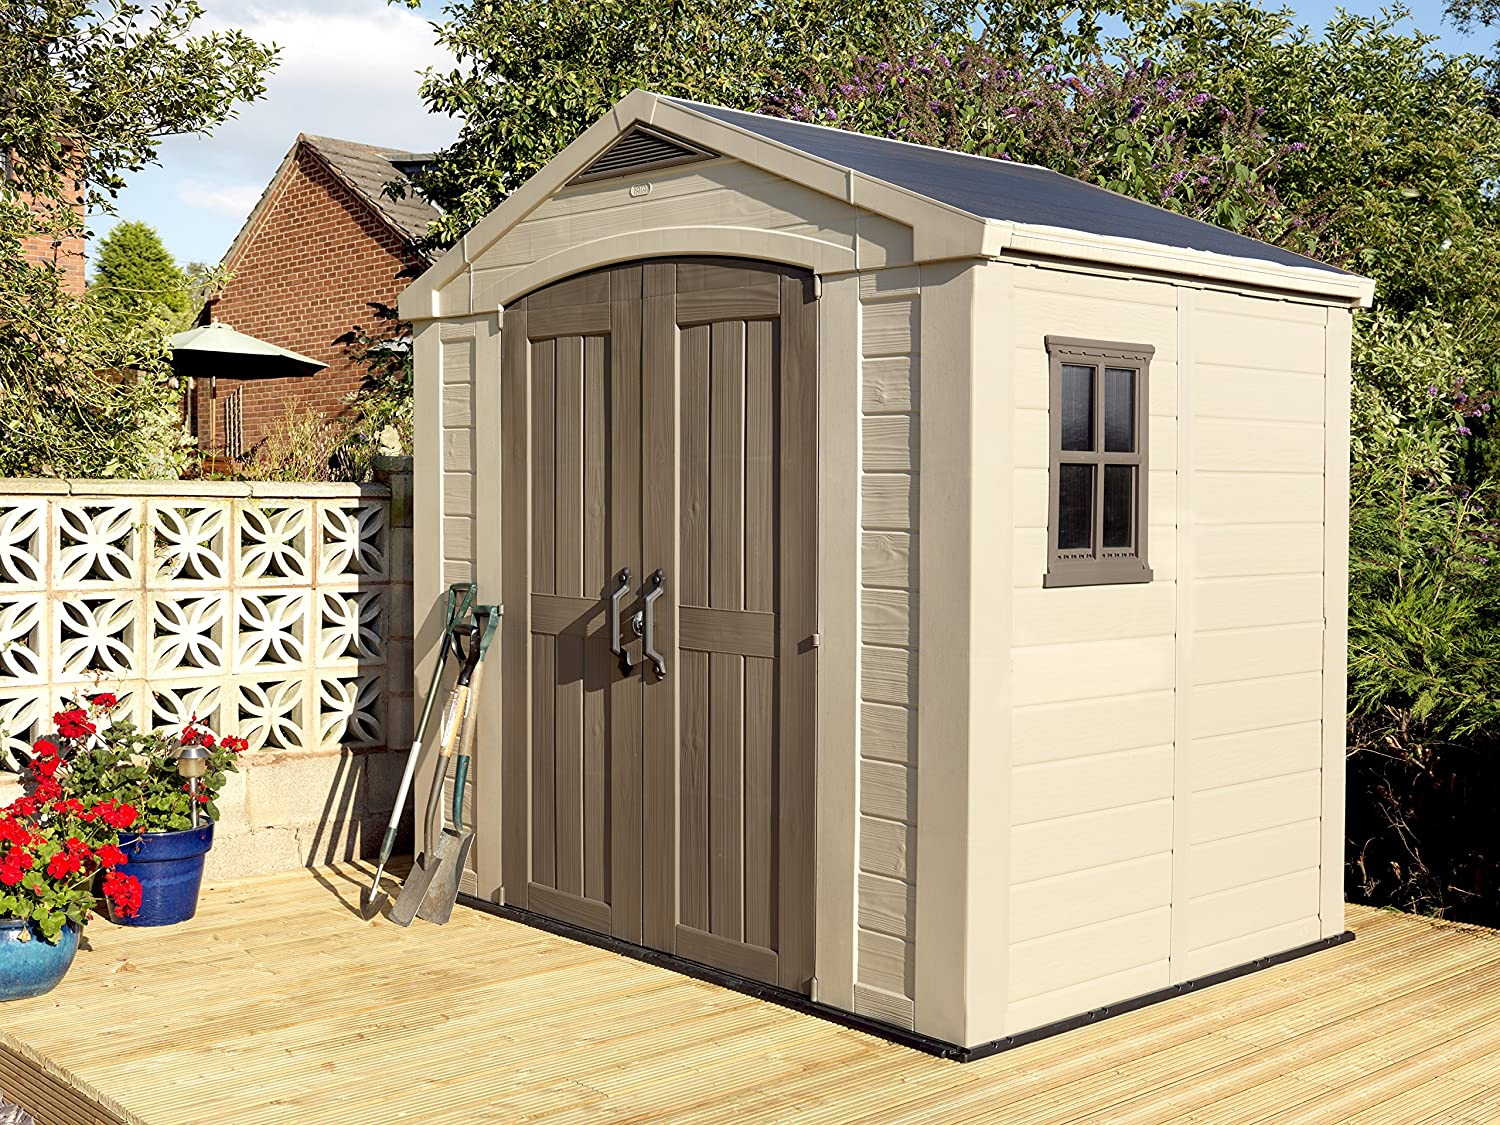 plastic outdoor ft fast assets sale x video with shed sheds shipping lifetime garden images today p storage shelves